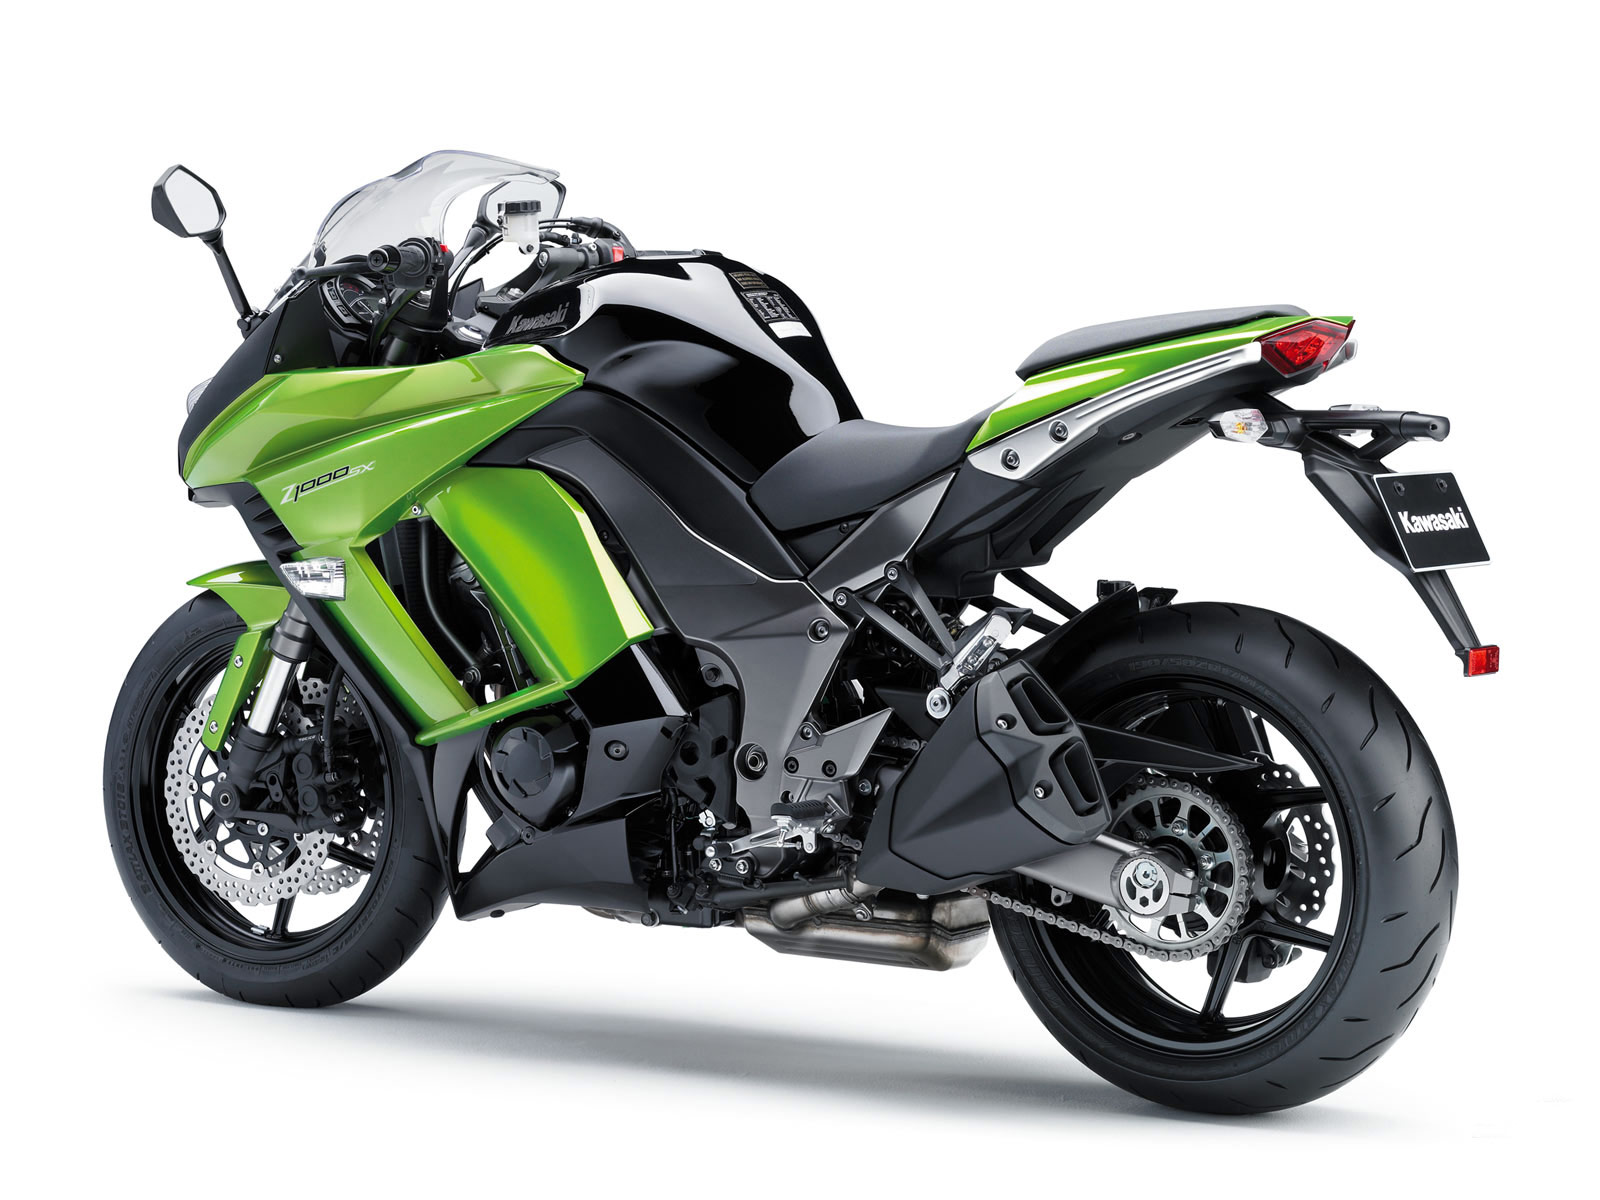 2011 kawasaki z 1000 sx motorcycle wallpaper. Black Bedroom Furniture Sets. Home Design Ideas